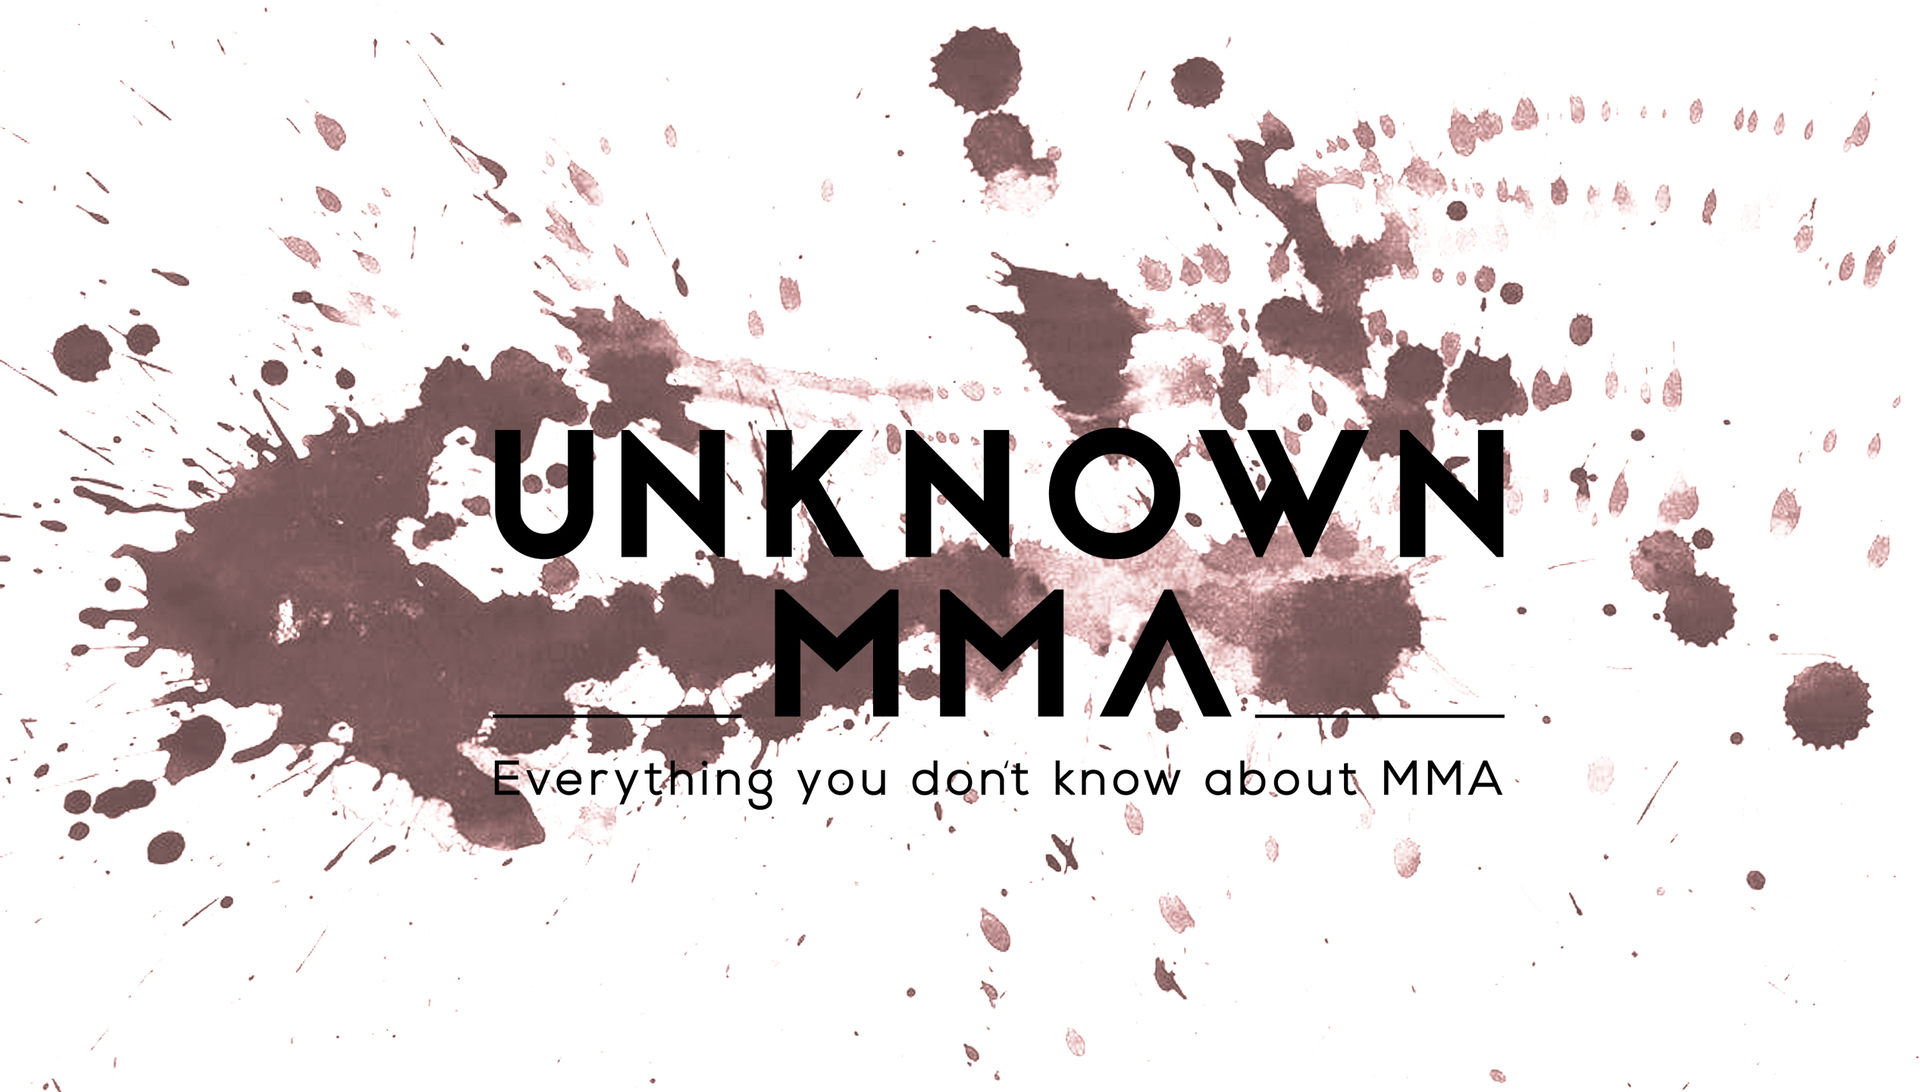 Unknown MMA by Chica